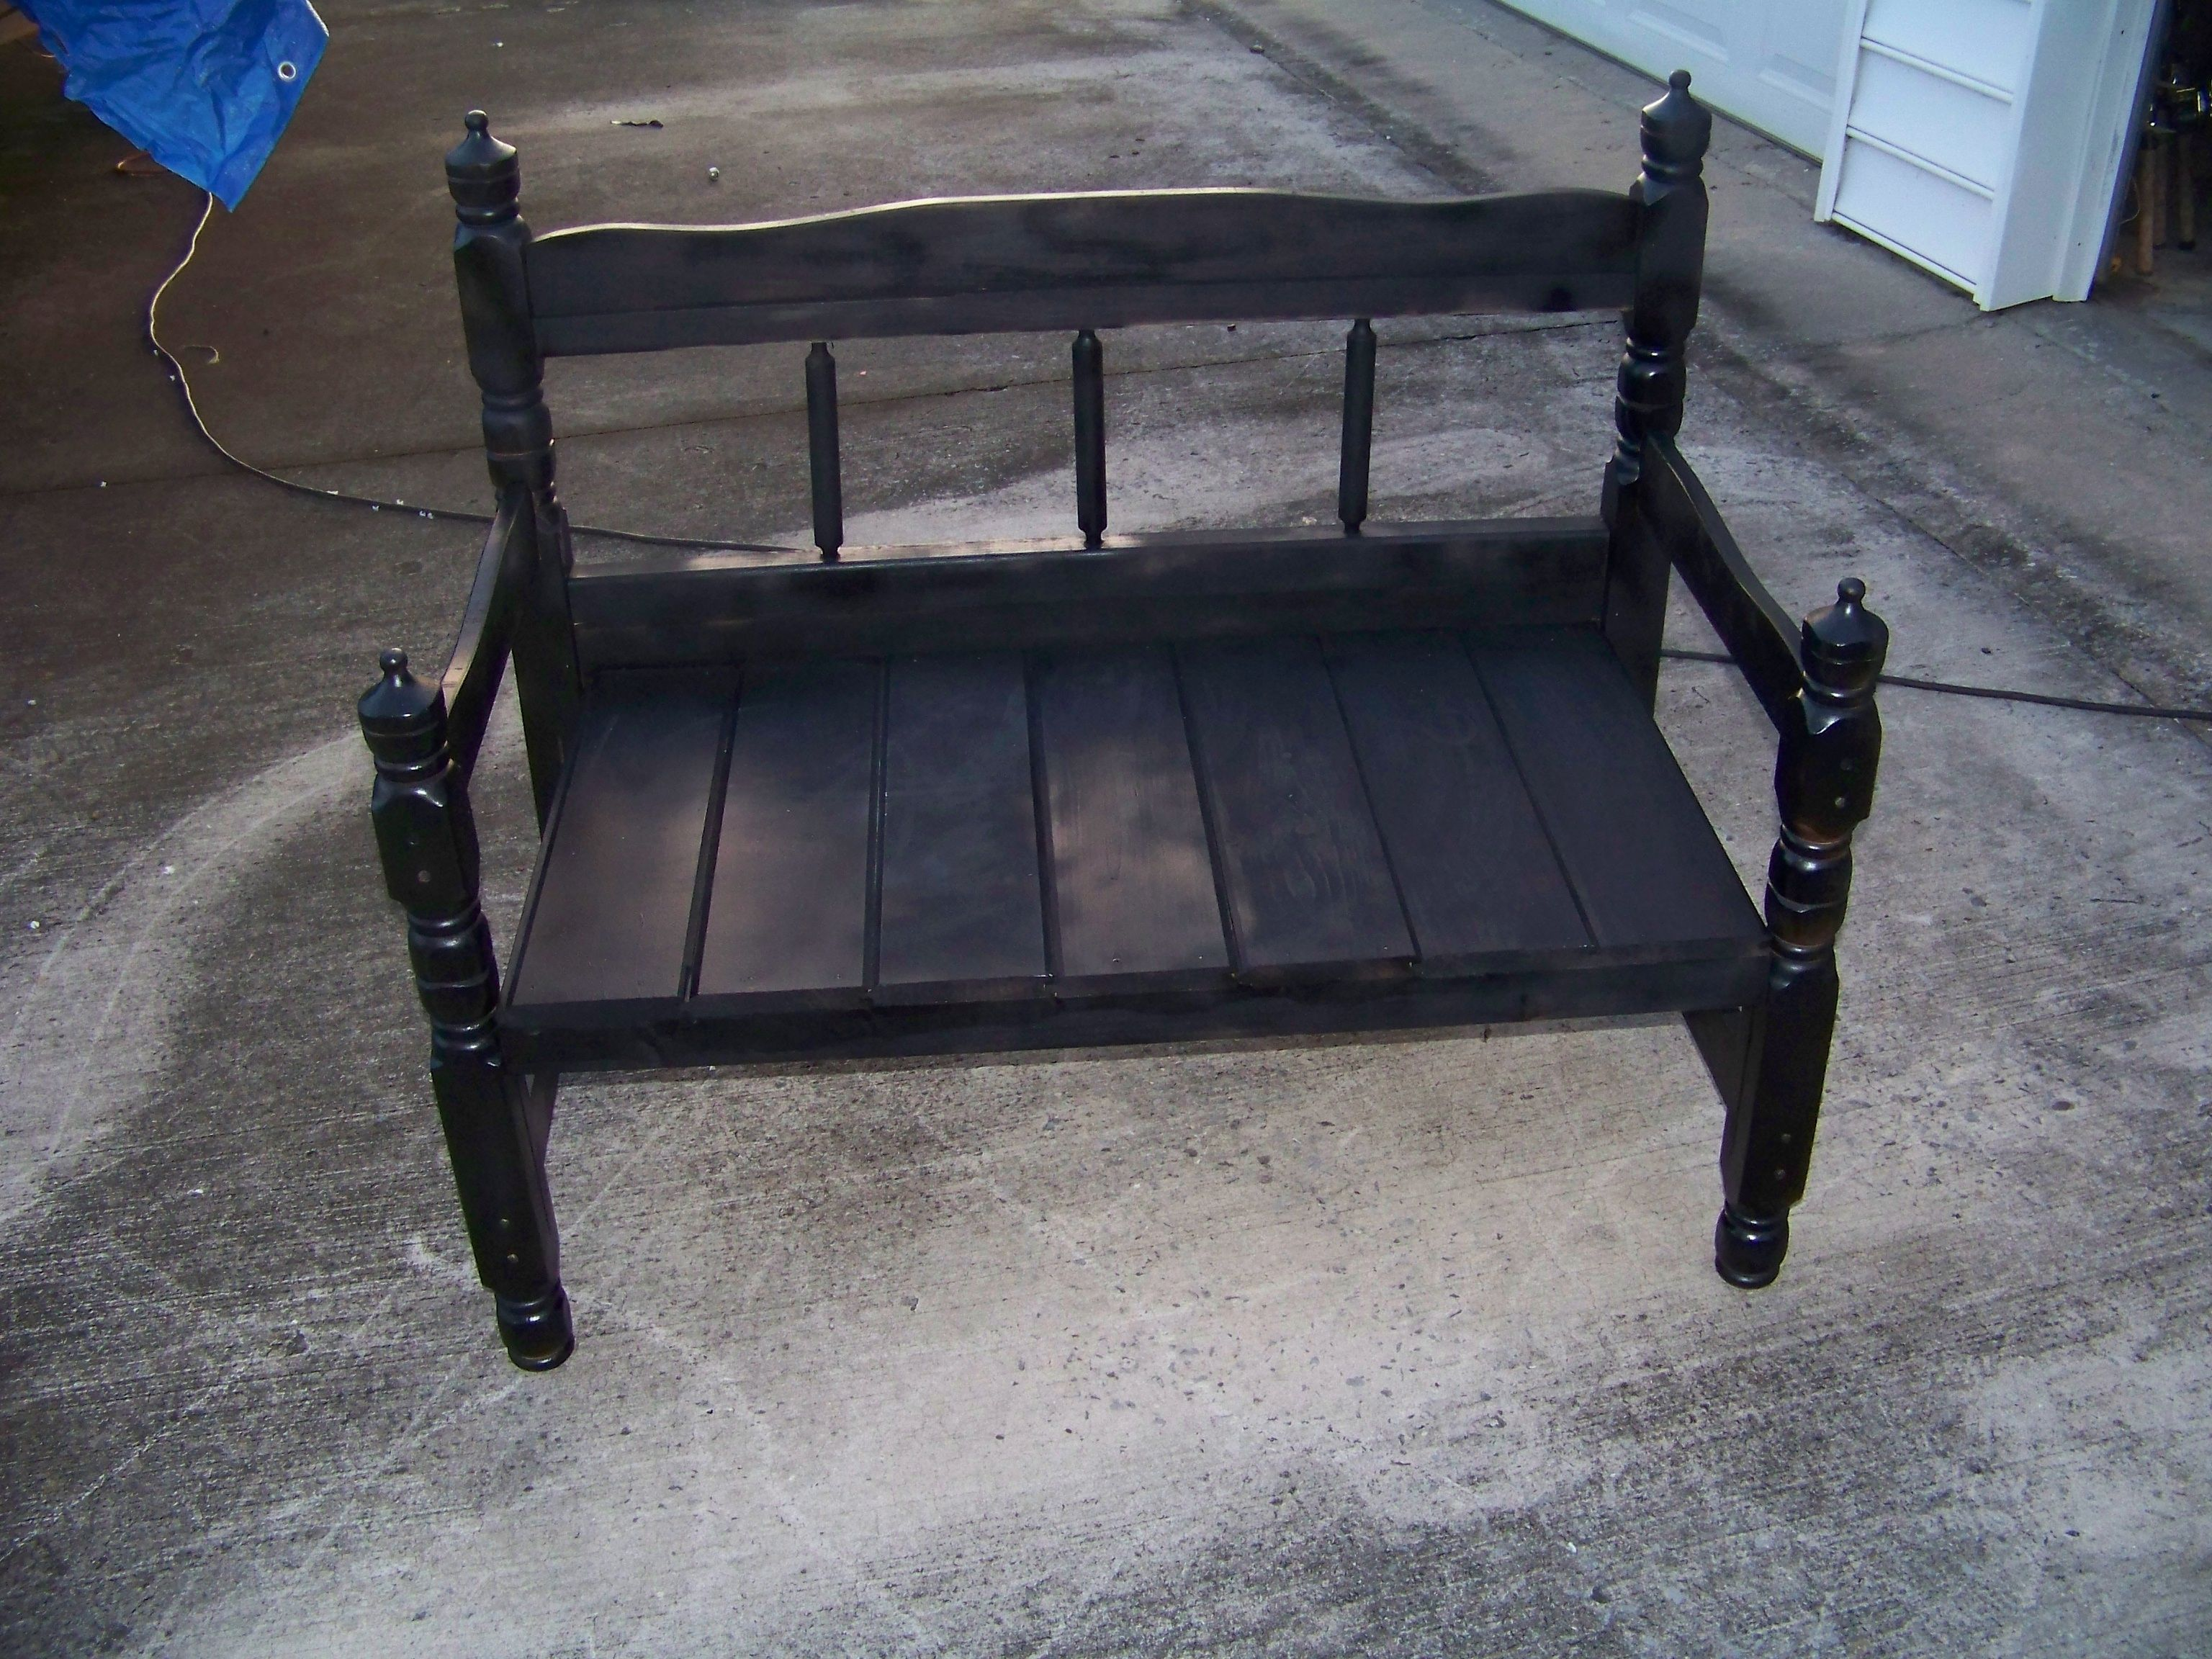 Remarkable My Husbands New Project Twin Bed Frame Bench In Short Links Chair Design For Home Short Linksinfo